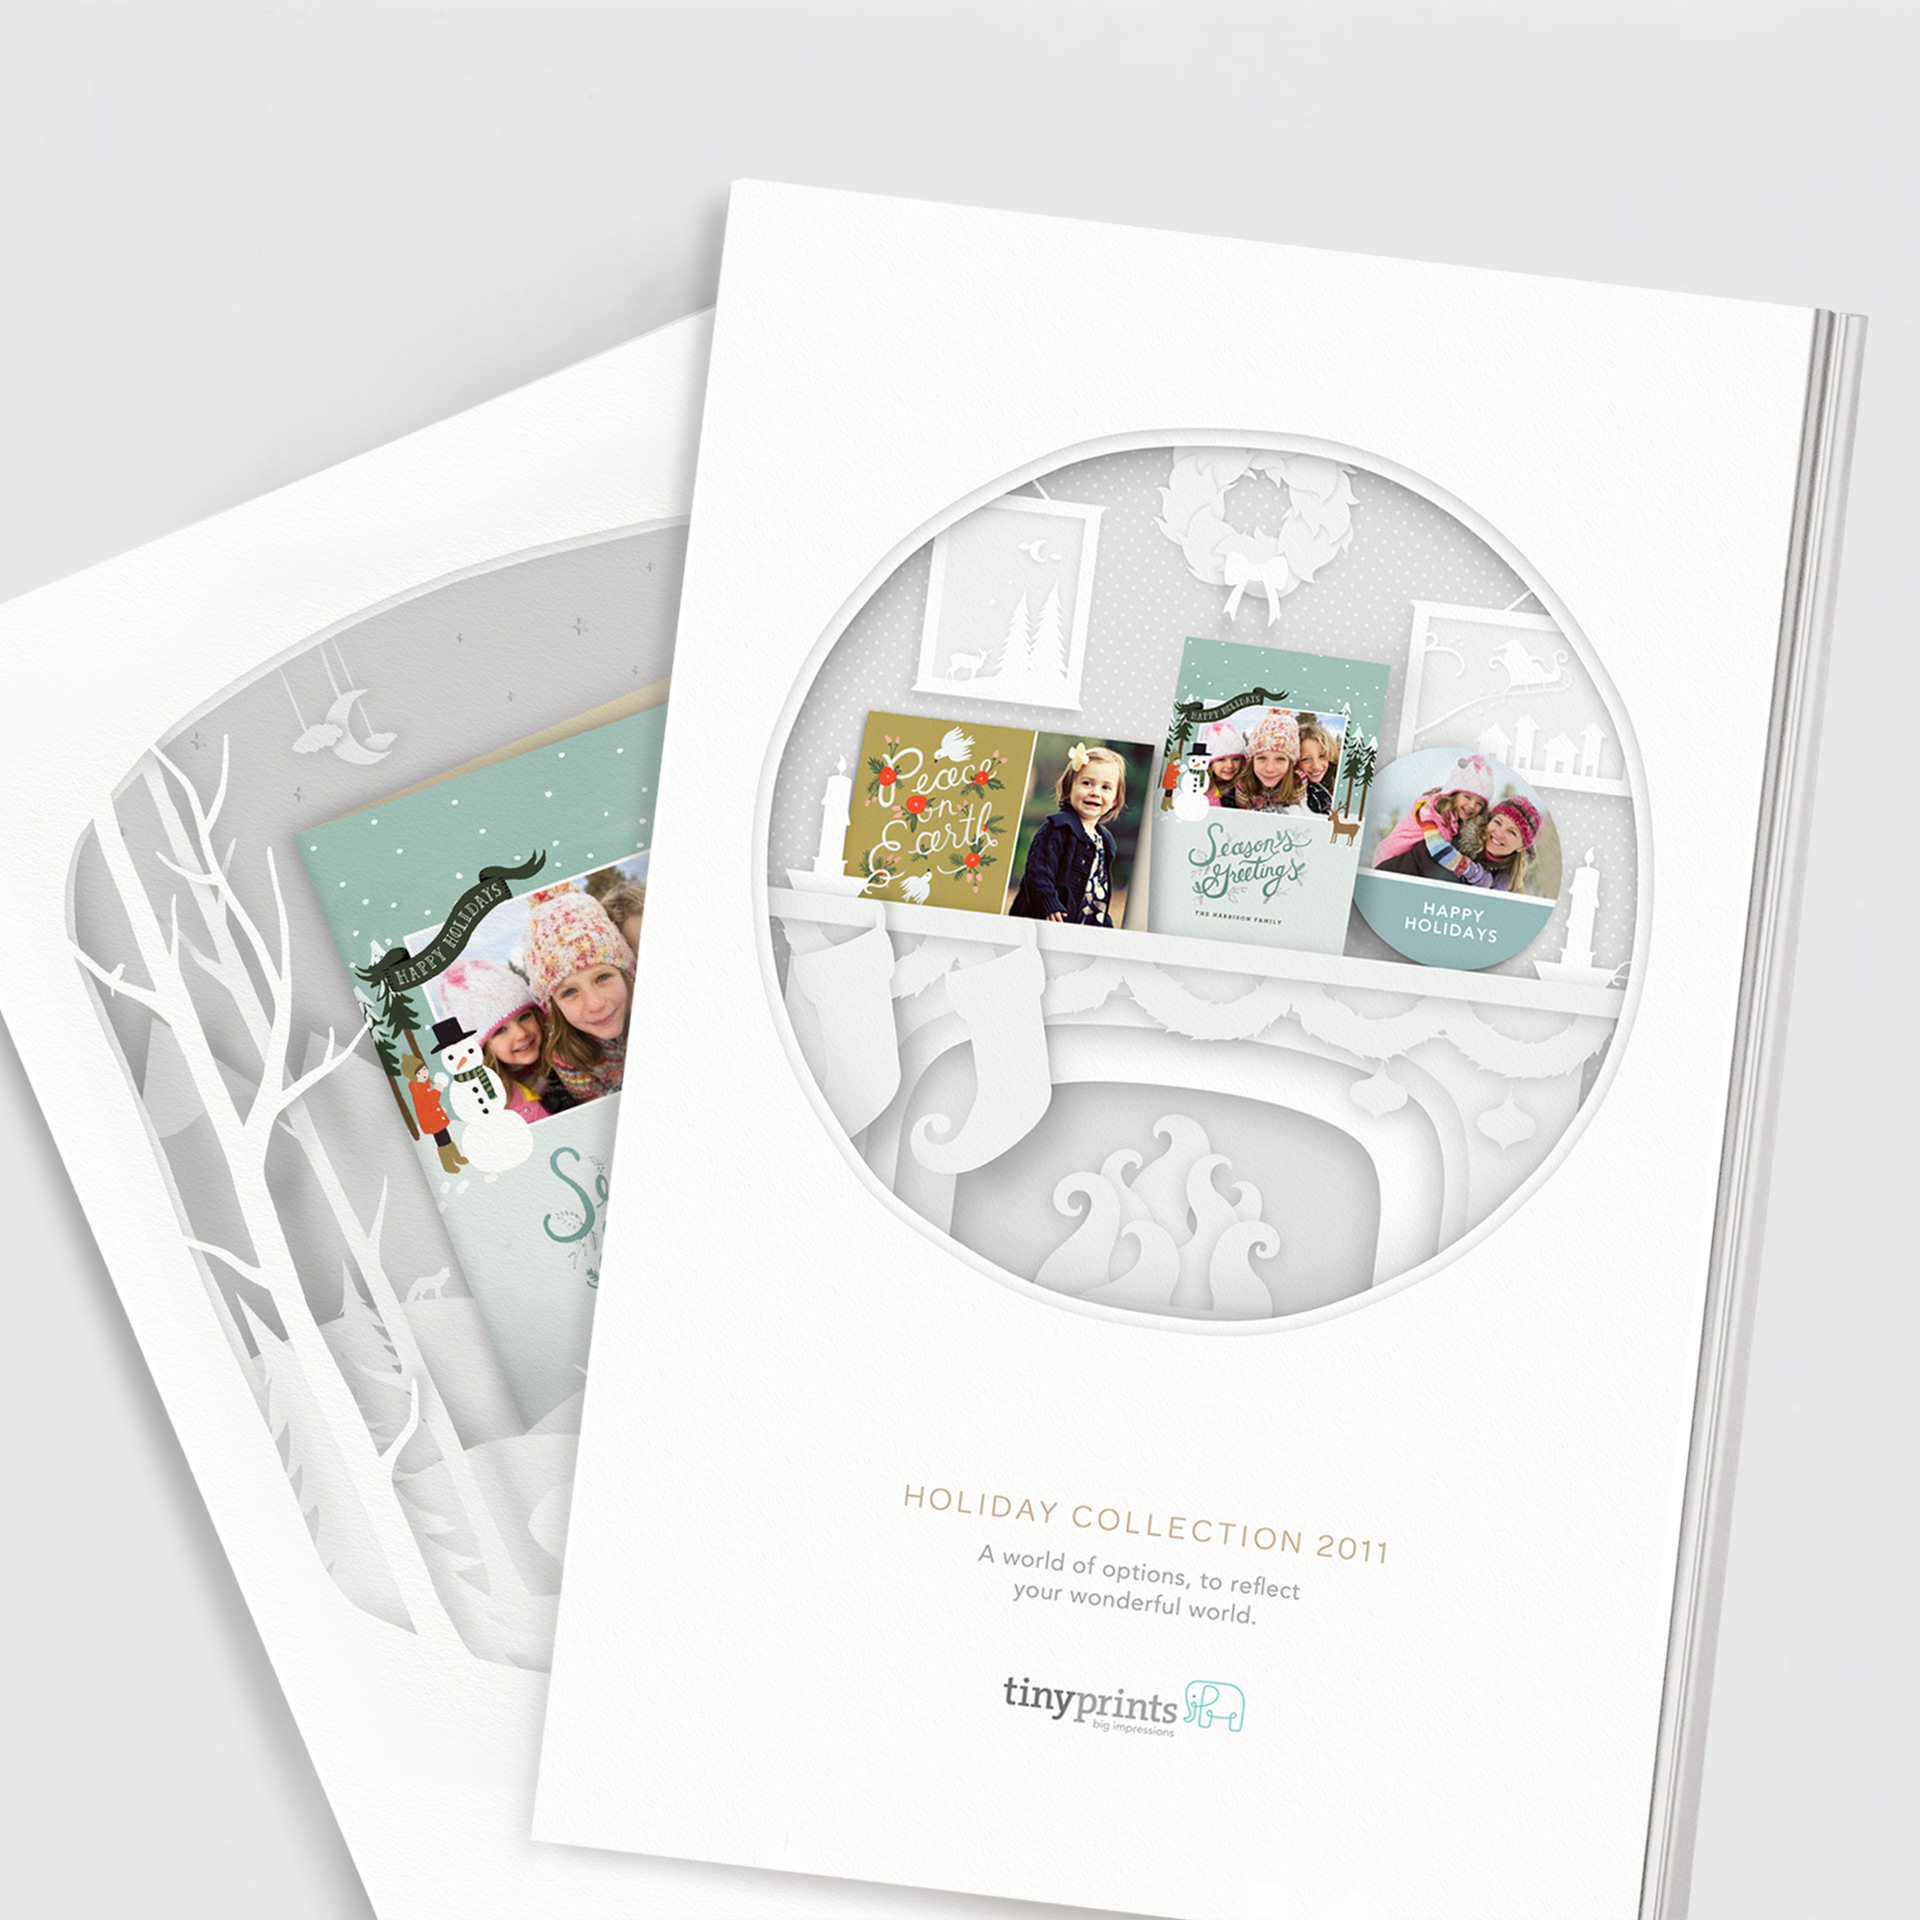 tinyprints_holiday_campaign_2